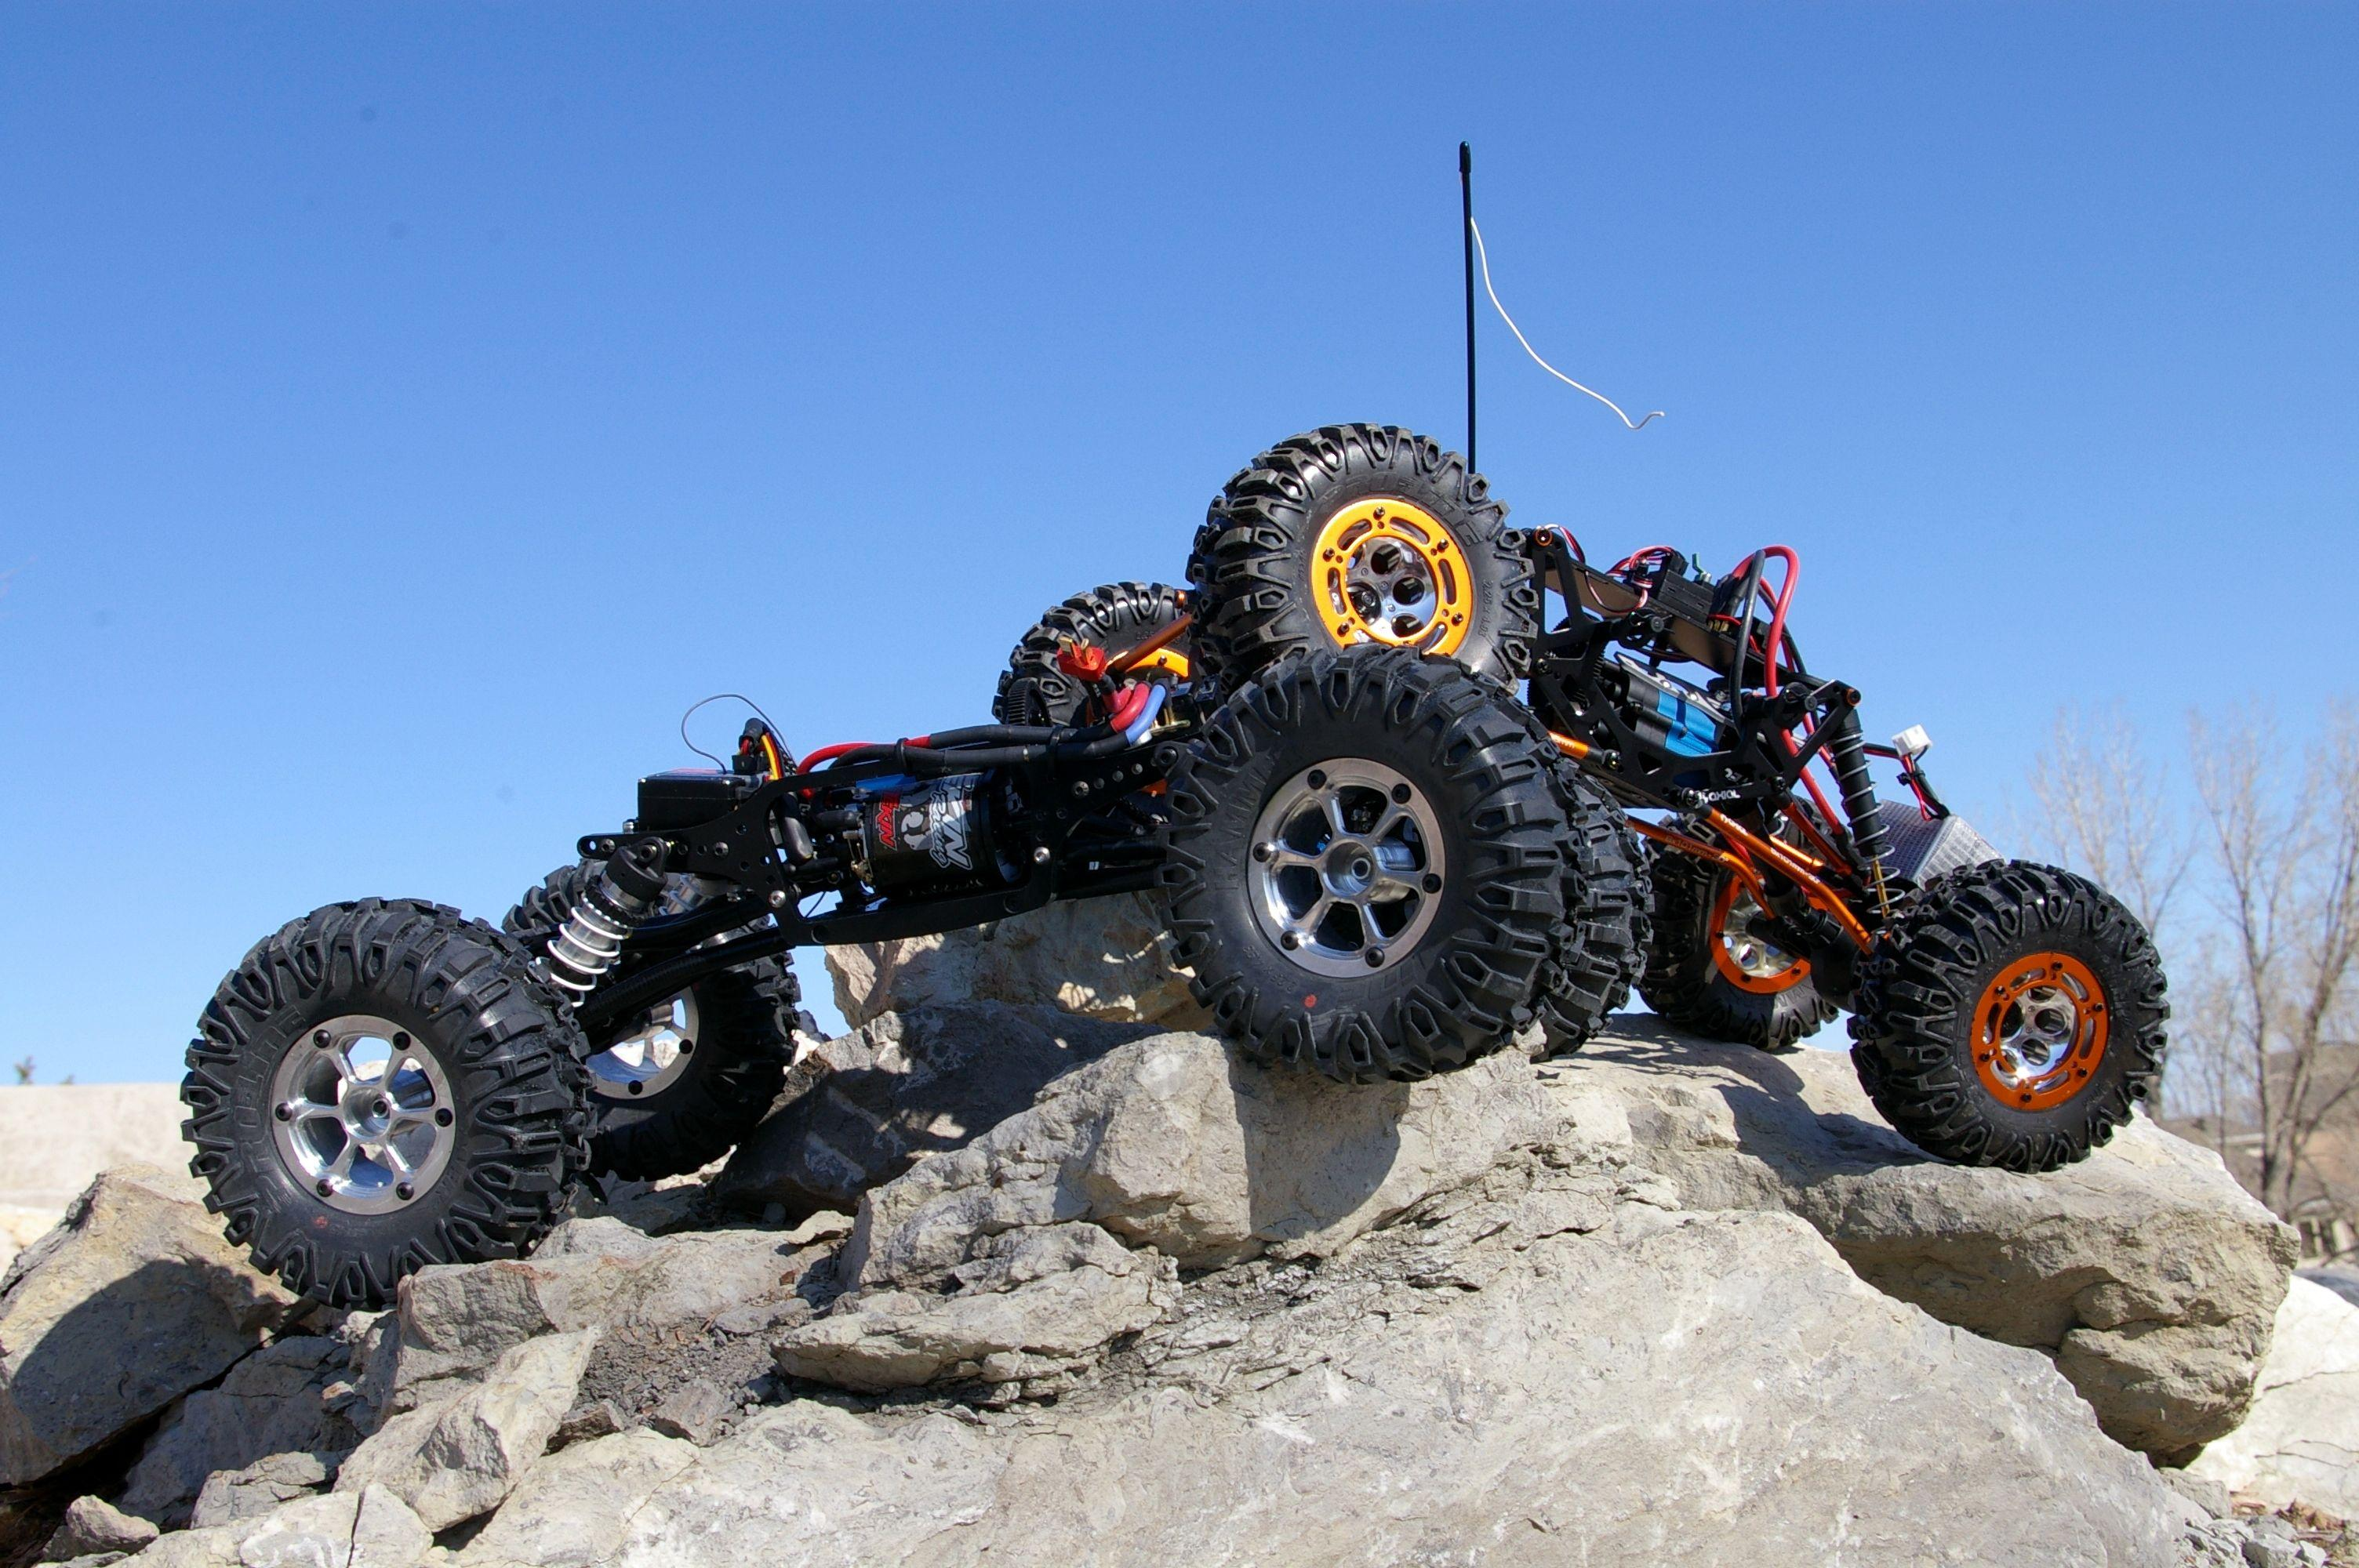 Rock Crawler Wallpaper : Wallpapers wallpaper cave